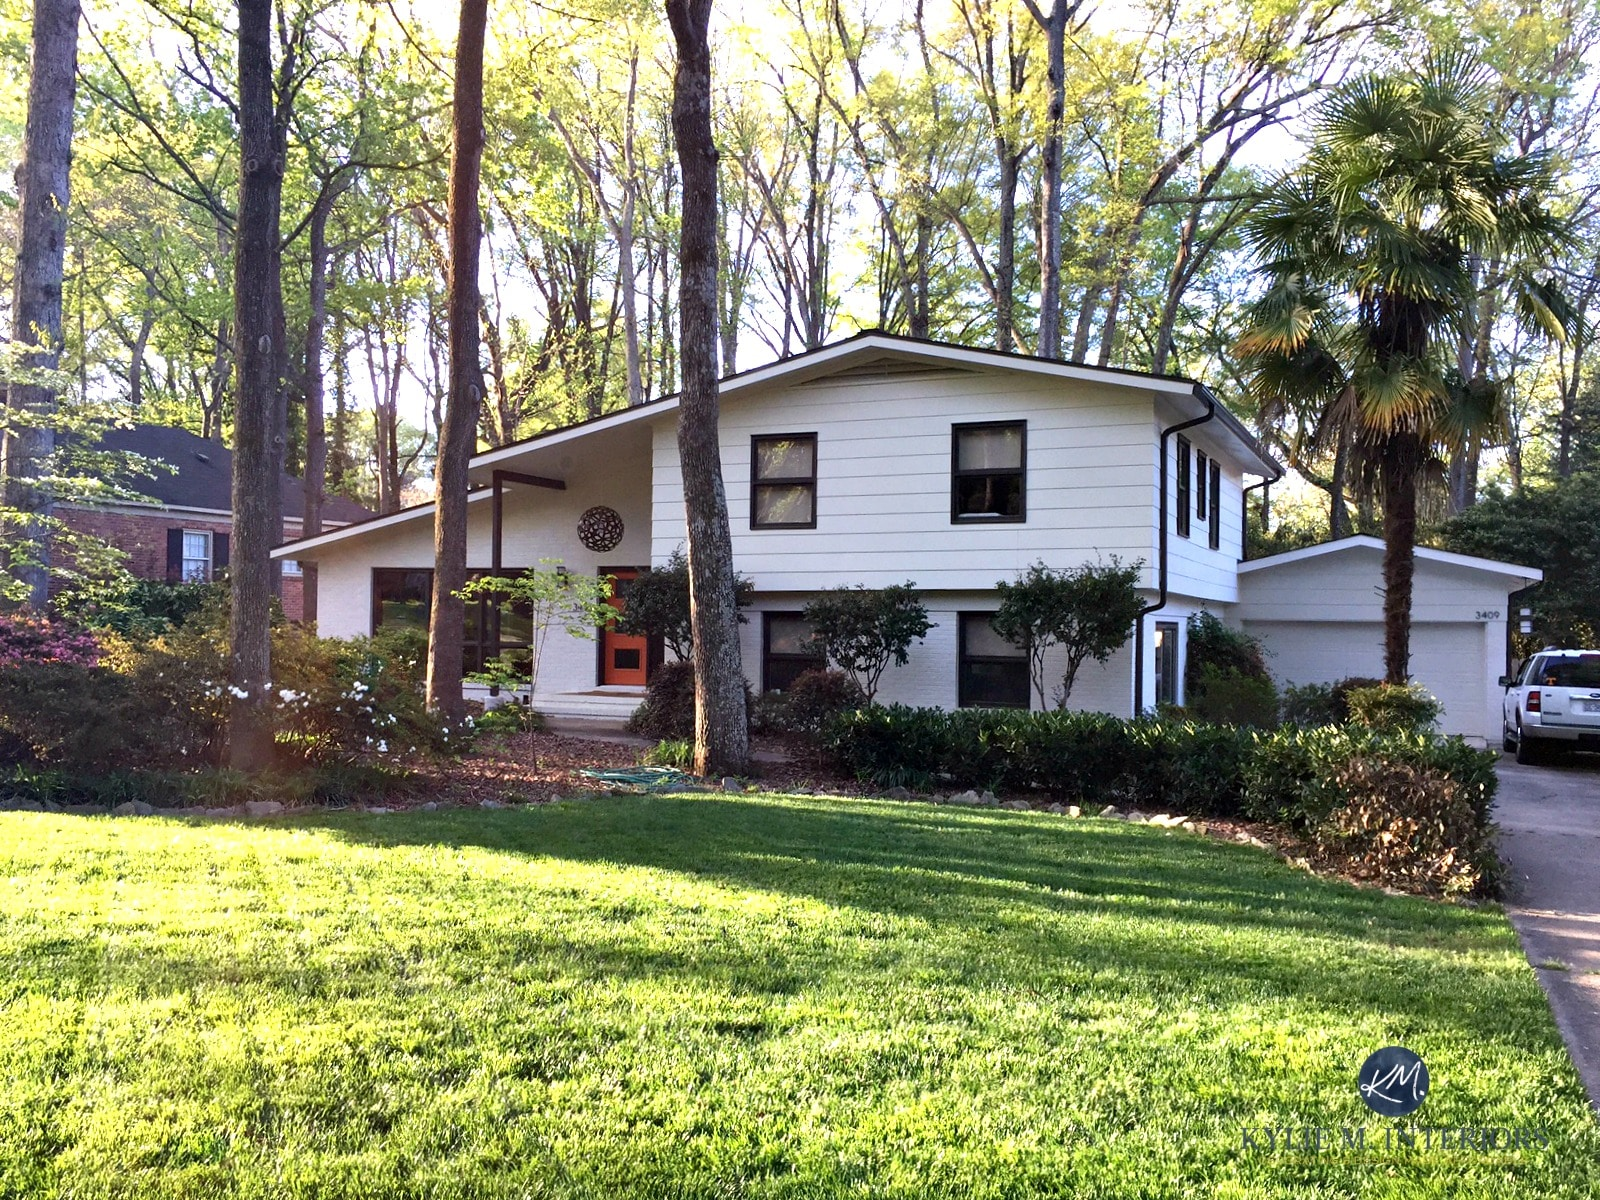 Exterior Split Level Home With Painted Brick Mid Century